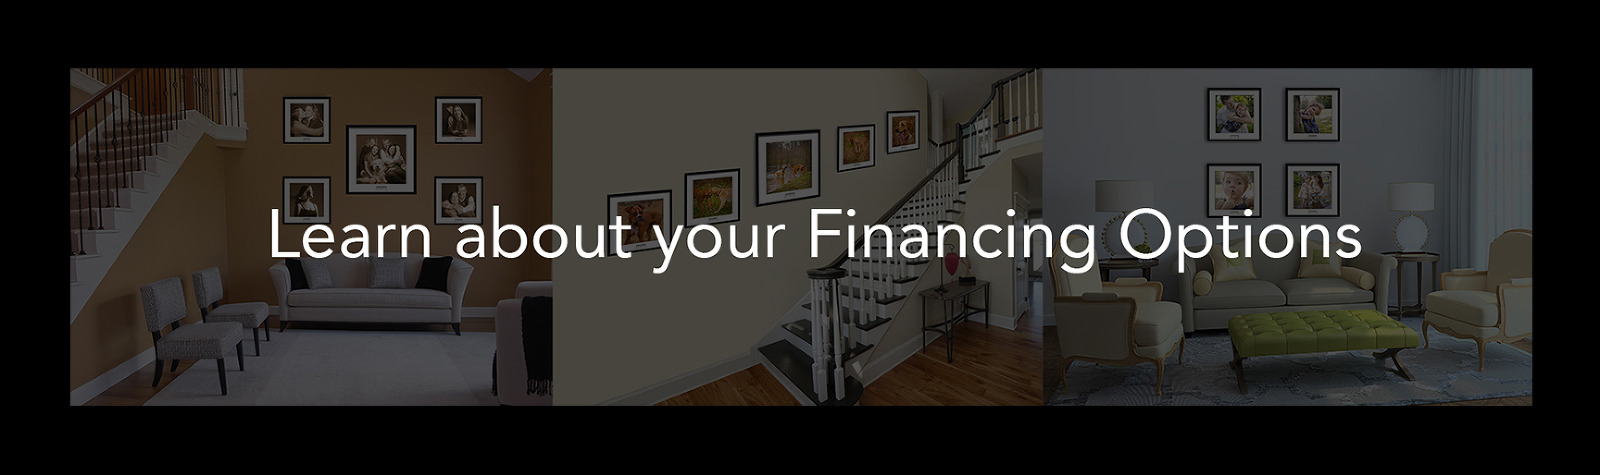 Financing Options banner - Willow Street Pictures